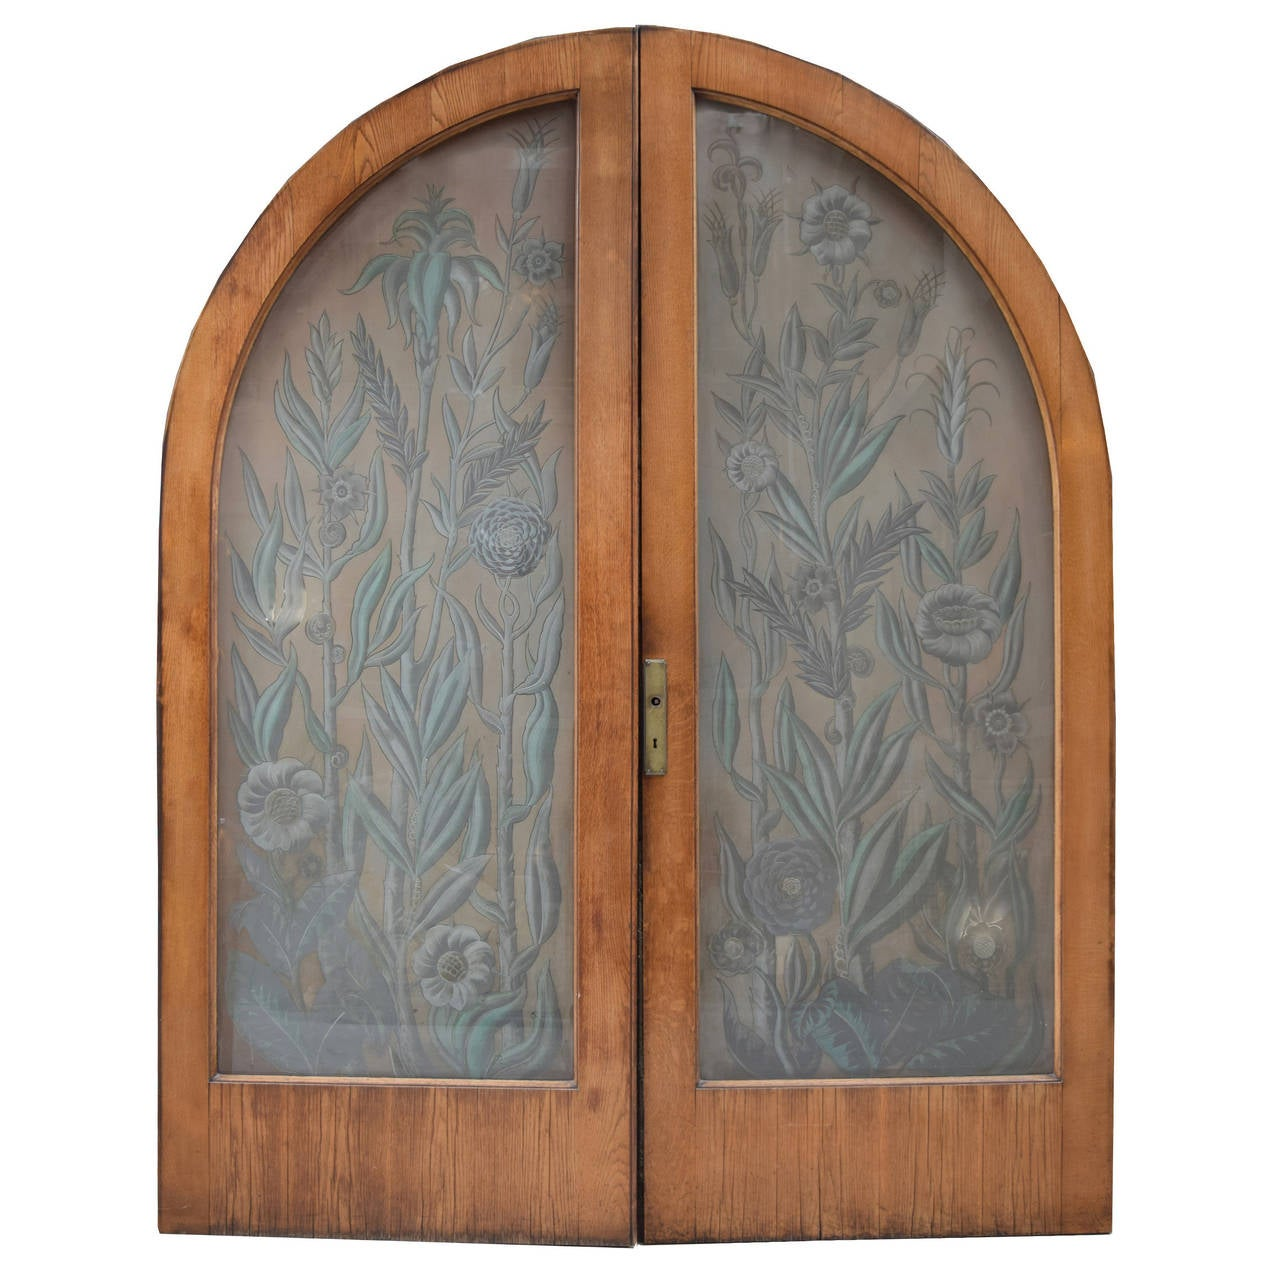 Pair of art nouveau etched glass doors for sale at 1stdibs for Etched glass doors